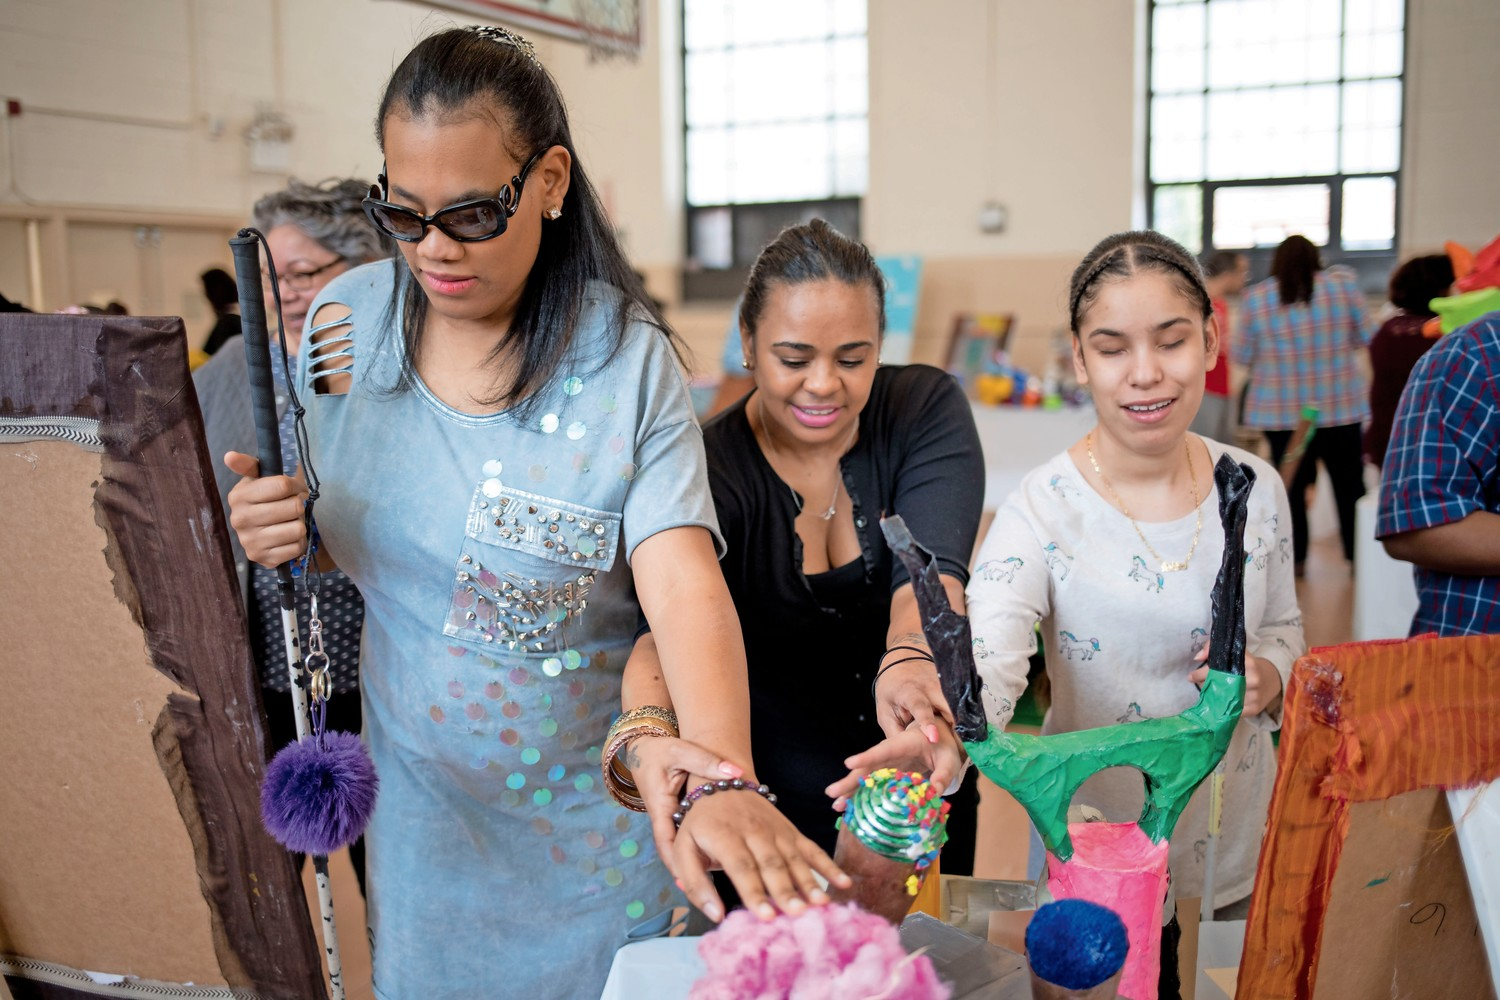 Ashley Moriseau, left, and Ashley Perez, right, feel art with the help of Mari Gonzalez. Moriseau and Perez are students at Lavelle School for the Blind, and both produced works of art for the school's third annual art exhibit.